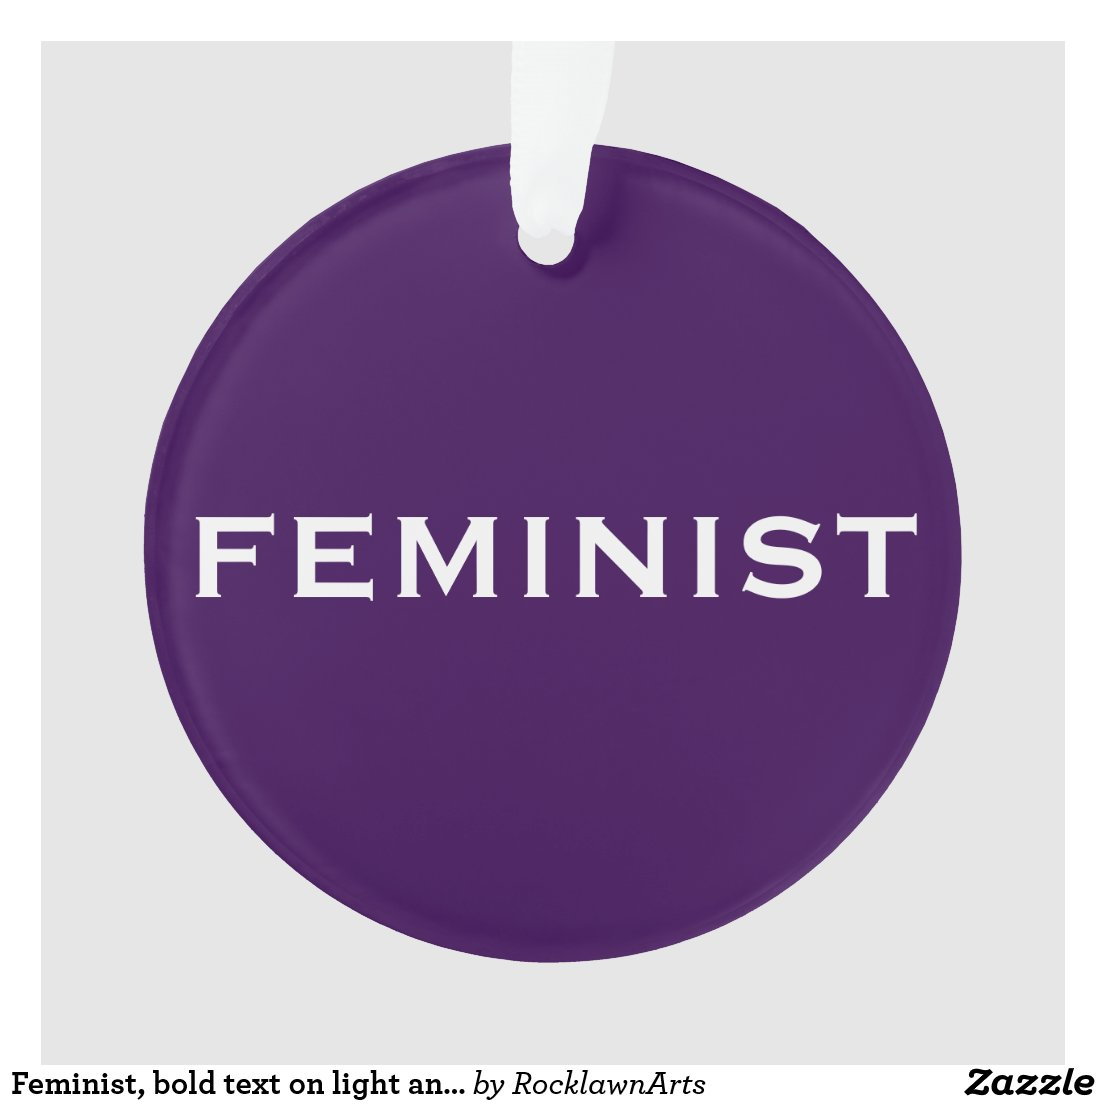 Feminist, bold text on light and dark purple ornament